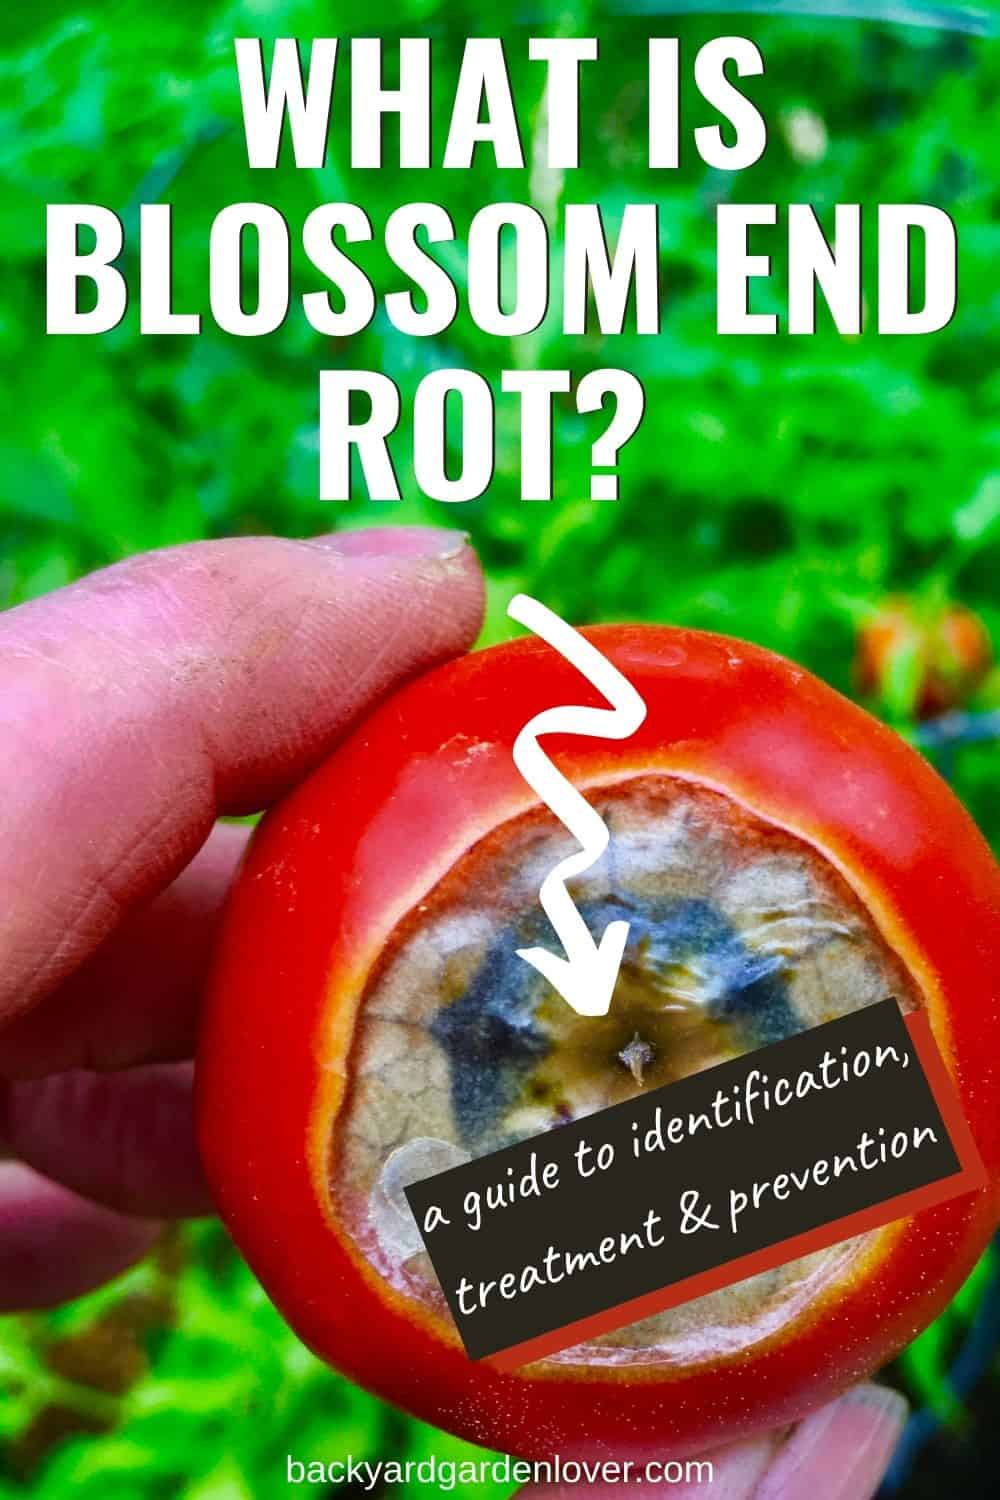 What is blossom end rot - Pinterest image